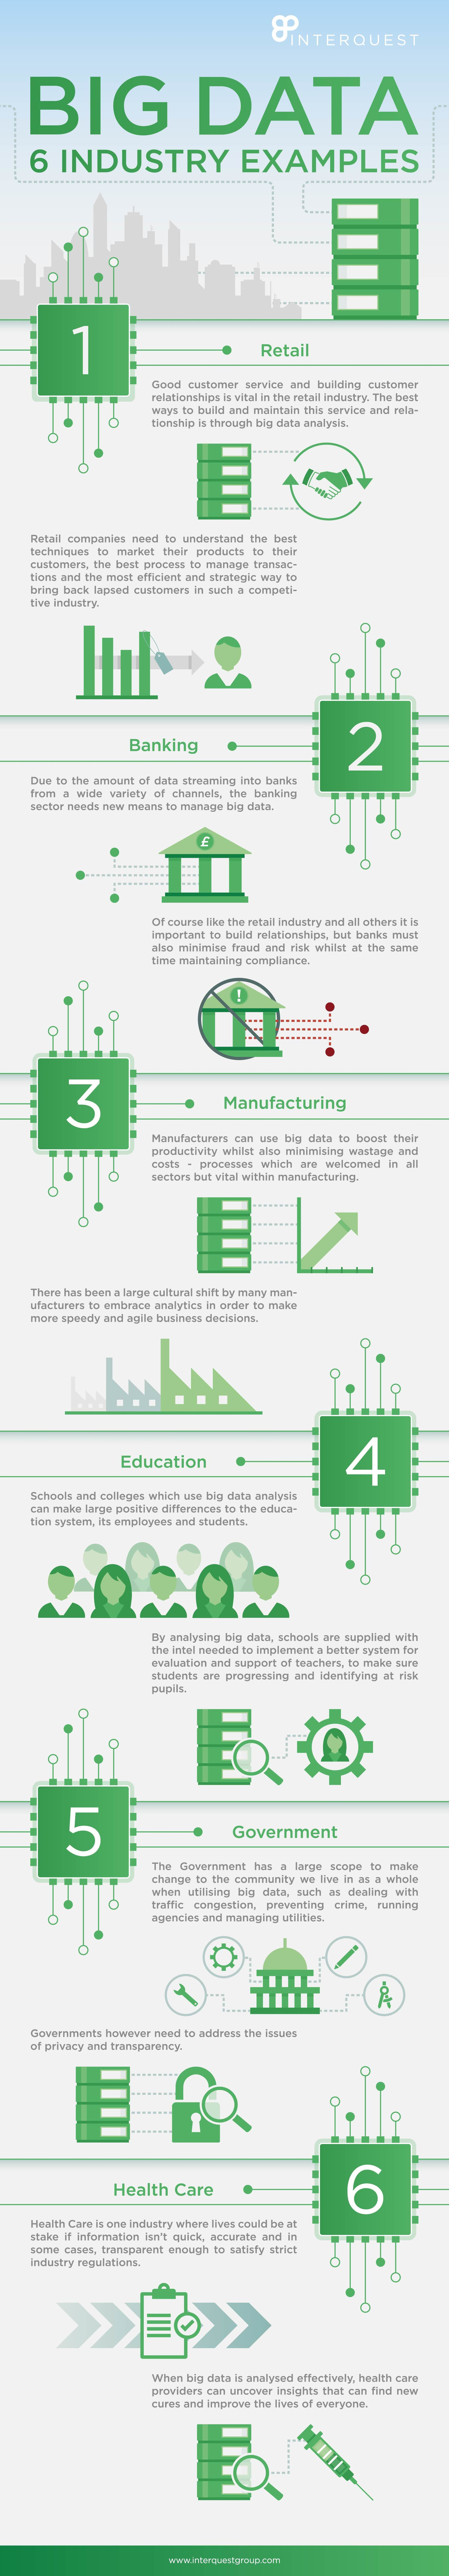 Big Data 6 Industry Examples infographic